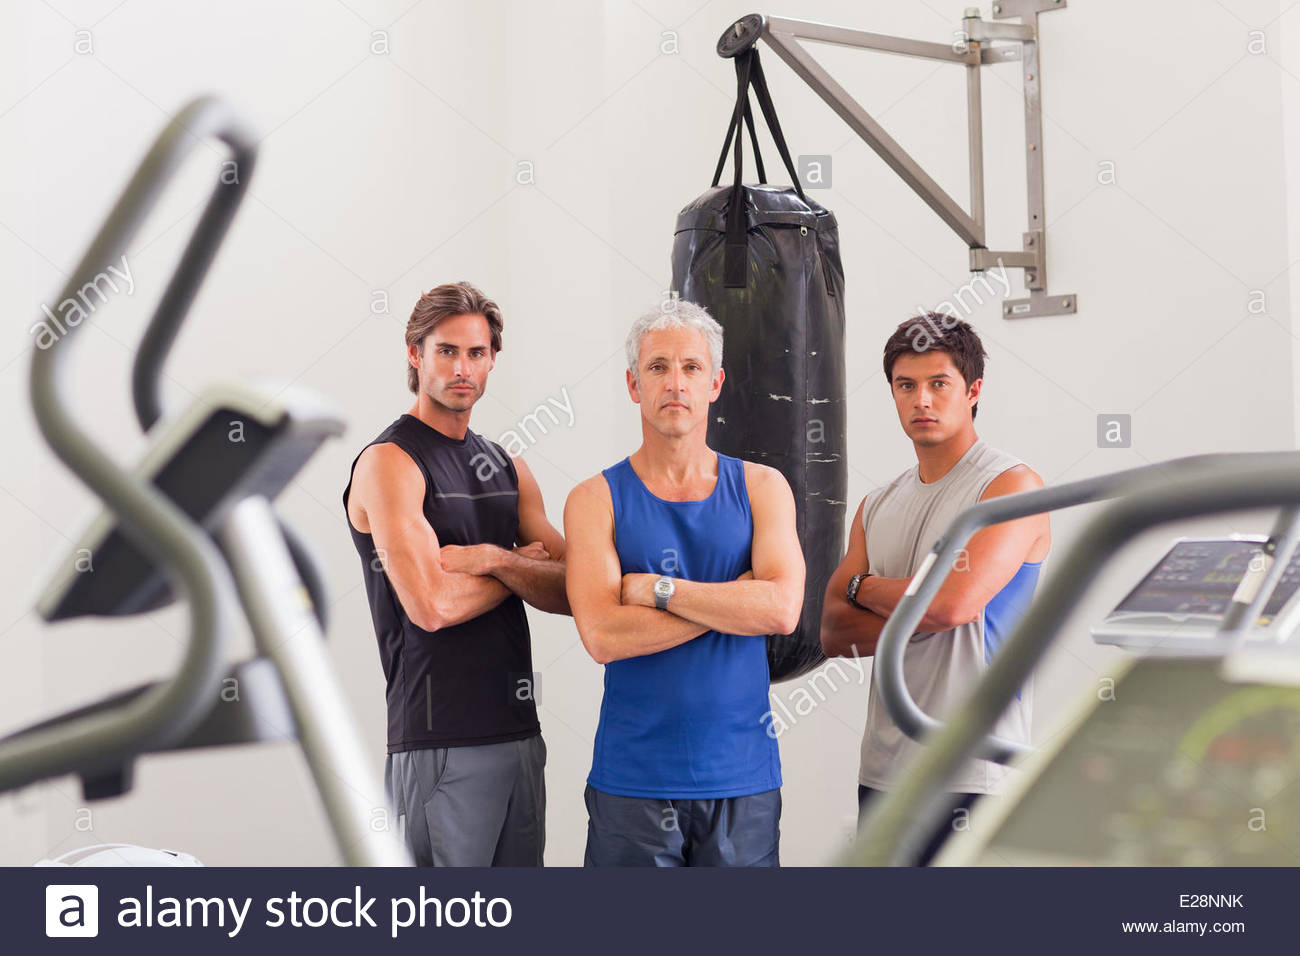 Portrait of smiling men with arms crossed near punching bag - Stock Image